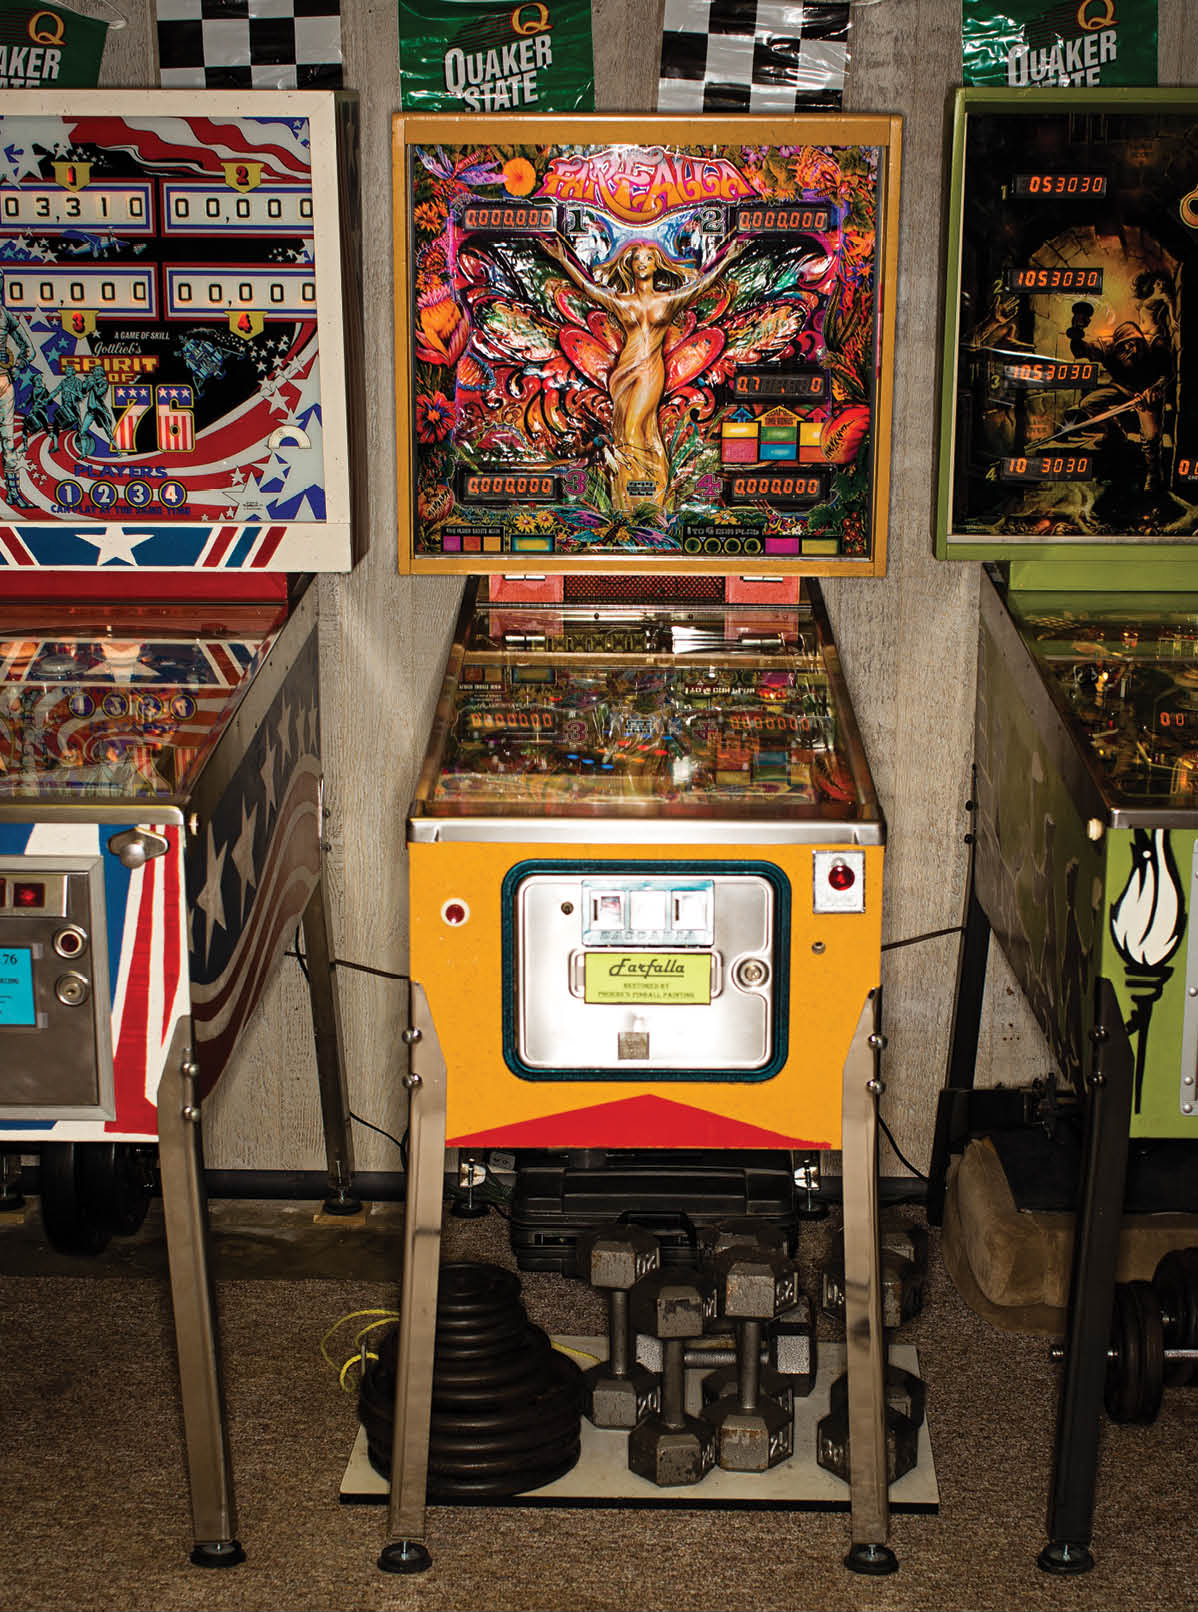 Farfalla, made by the Italian manufacturer Zaccaria, one of 16 pinball machines in Larry and Phoebe Smith's basement in Batavia.